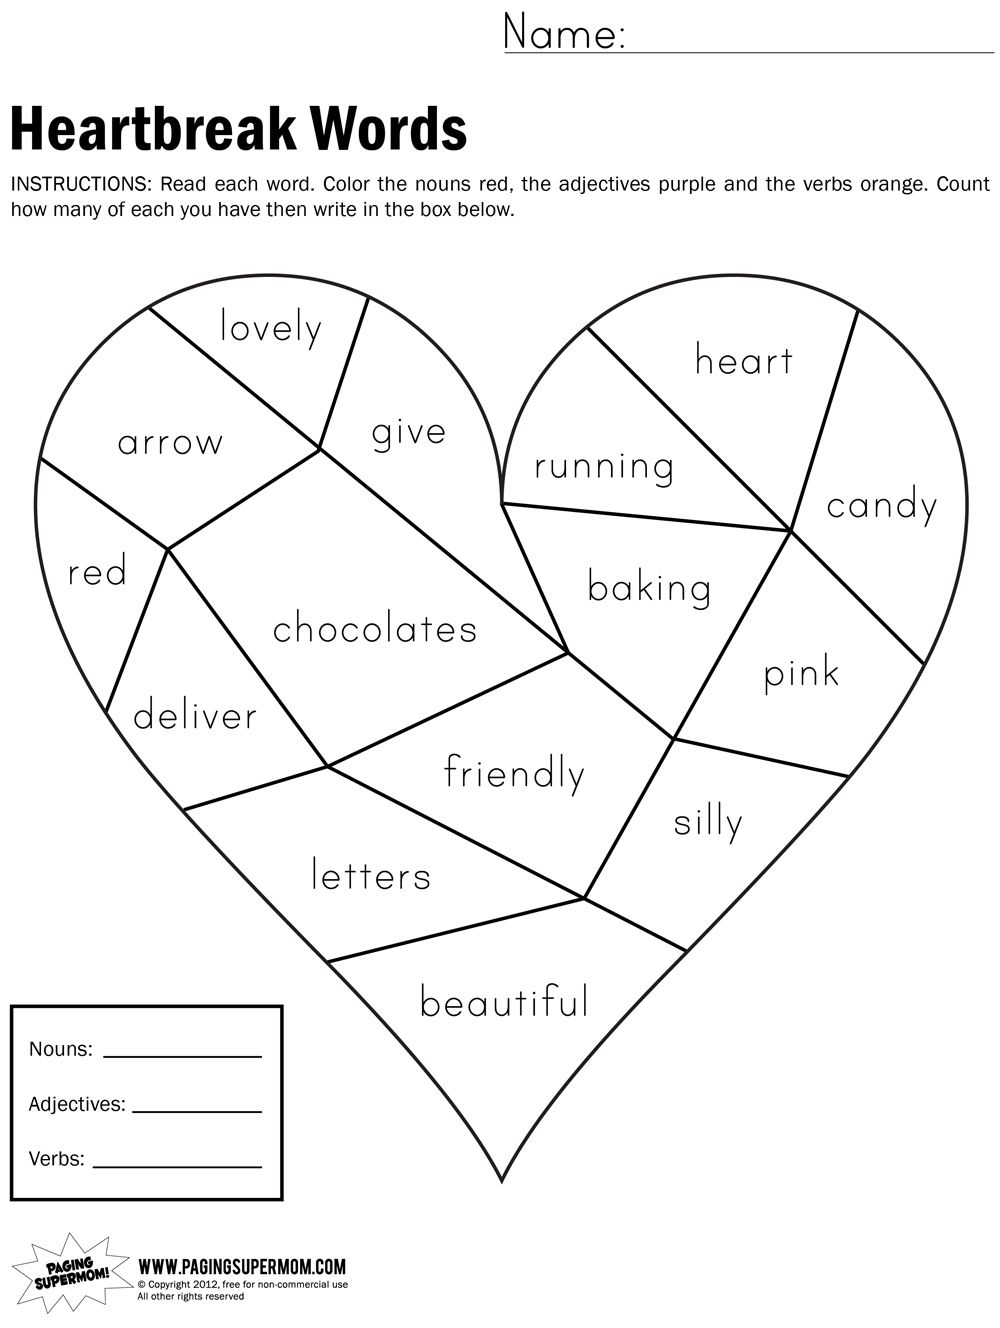 small resolution of Heartbreak Words Free Printable Worksheet   Paging Supermom   Color  worksheets